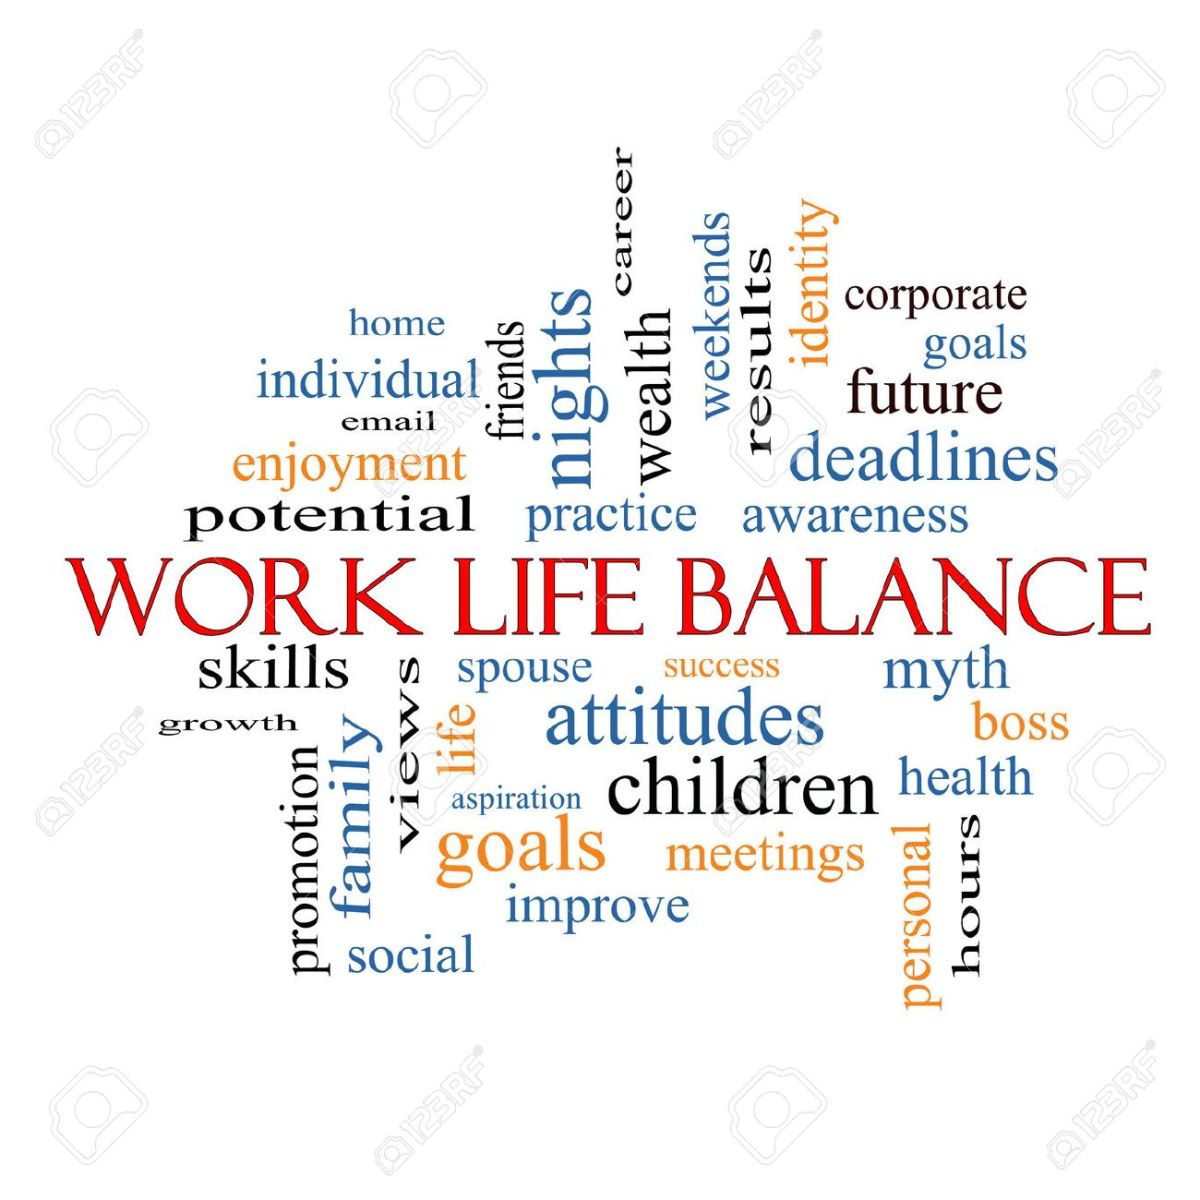 Work–life Balance Concepts Are Very Significant